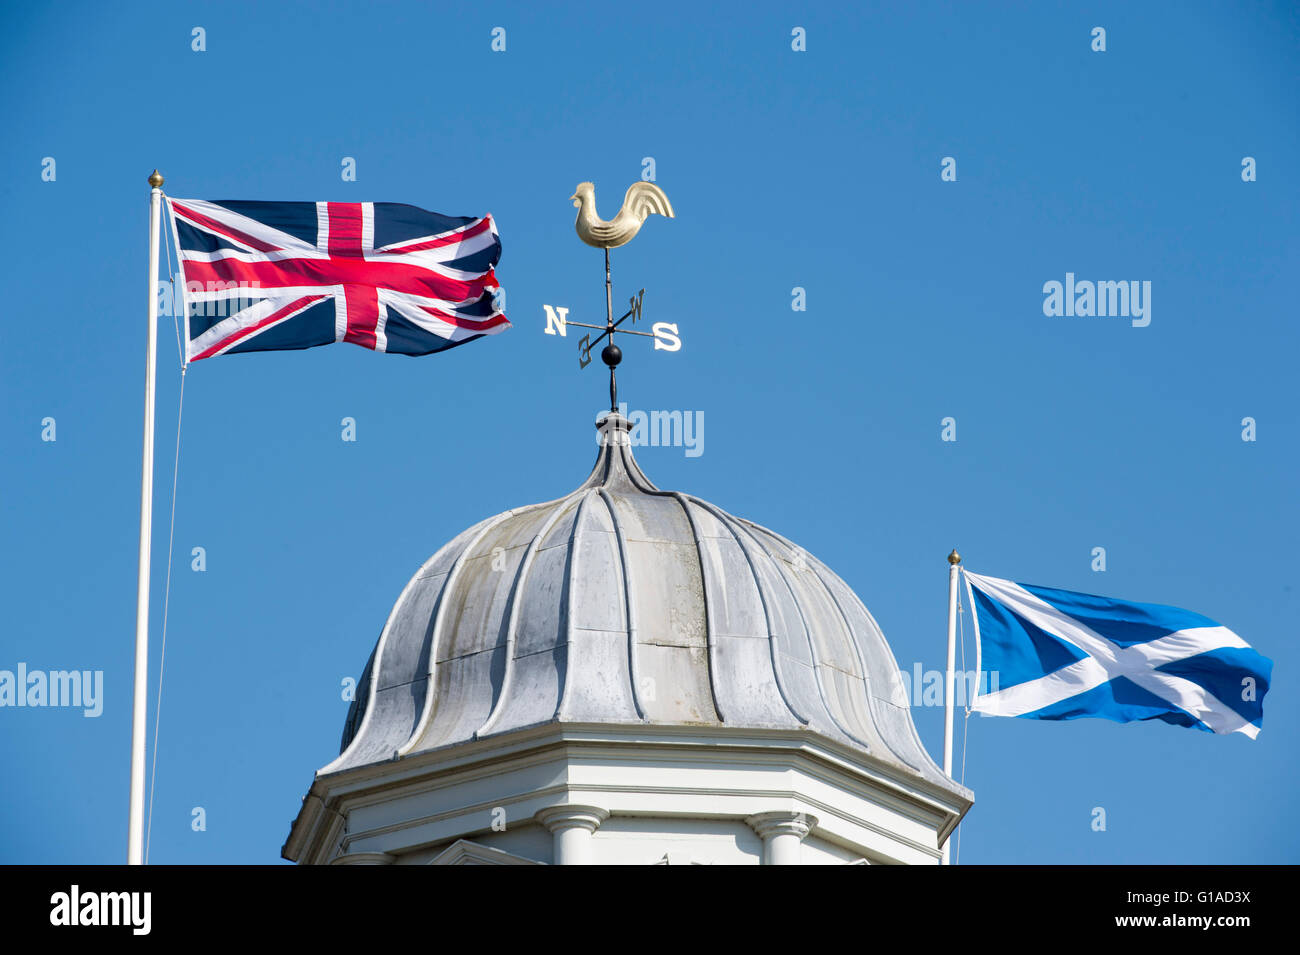 union jack and scottish saltire flags flying side by side above